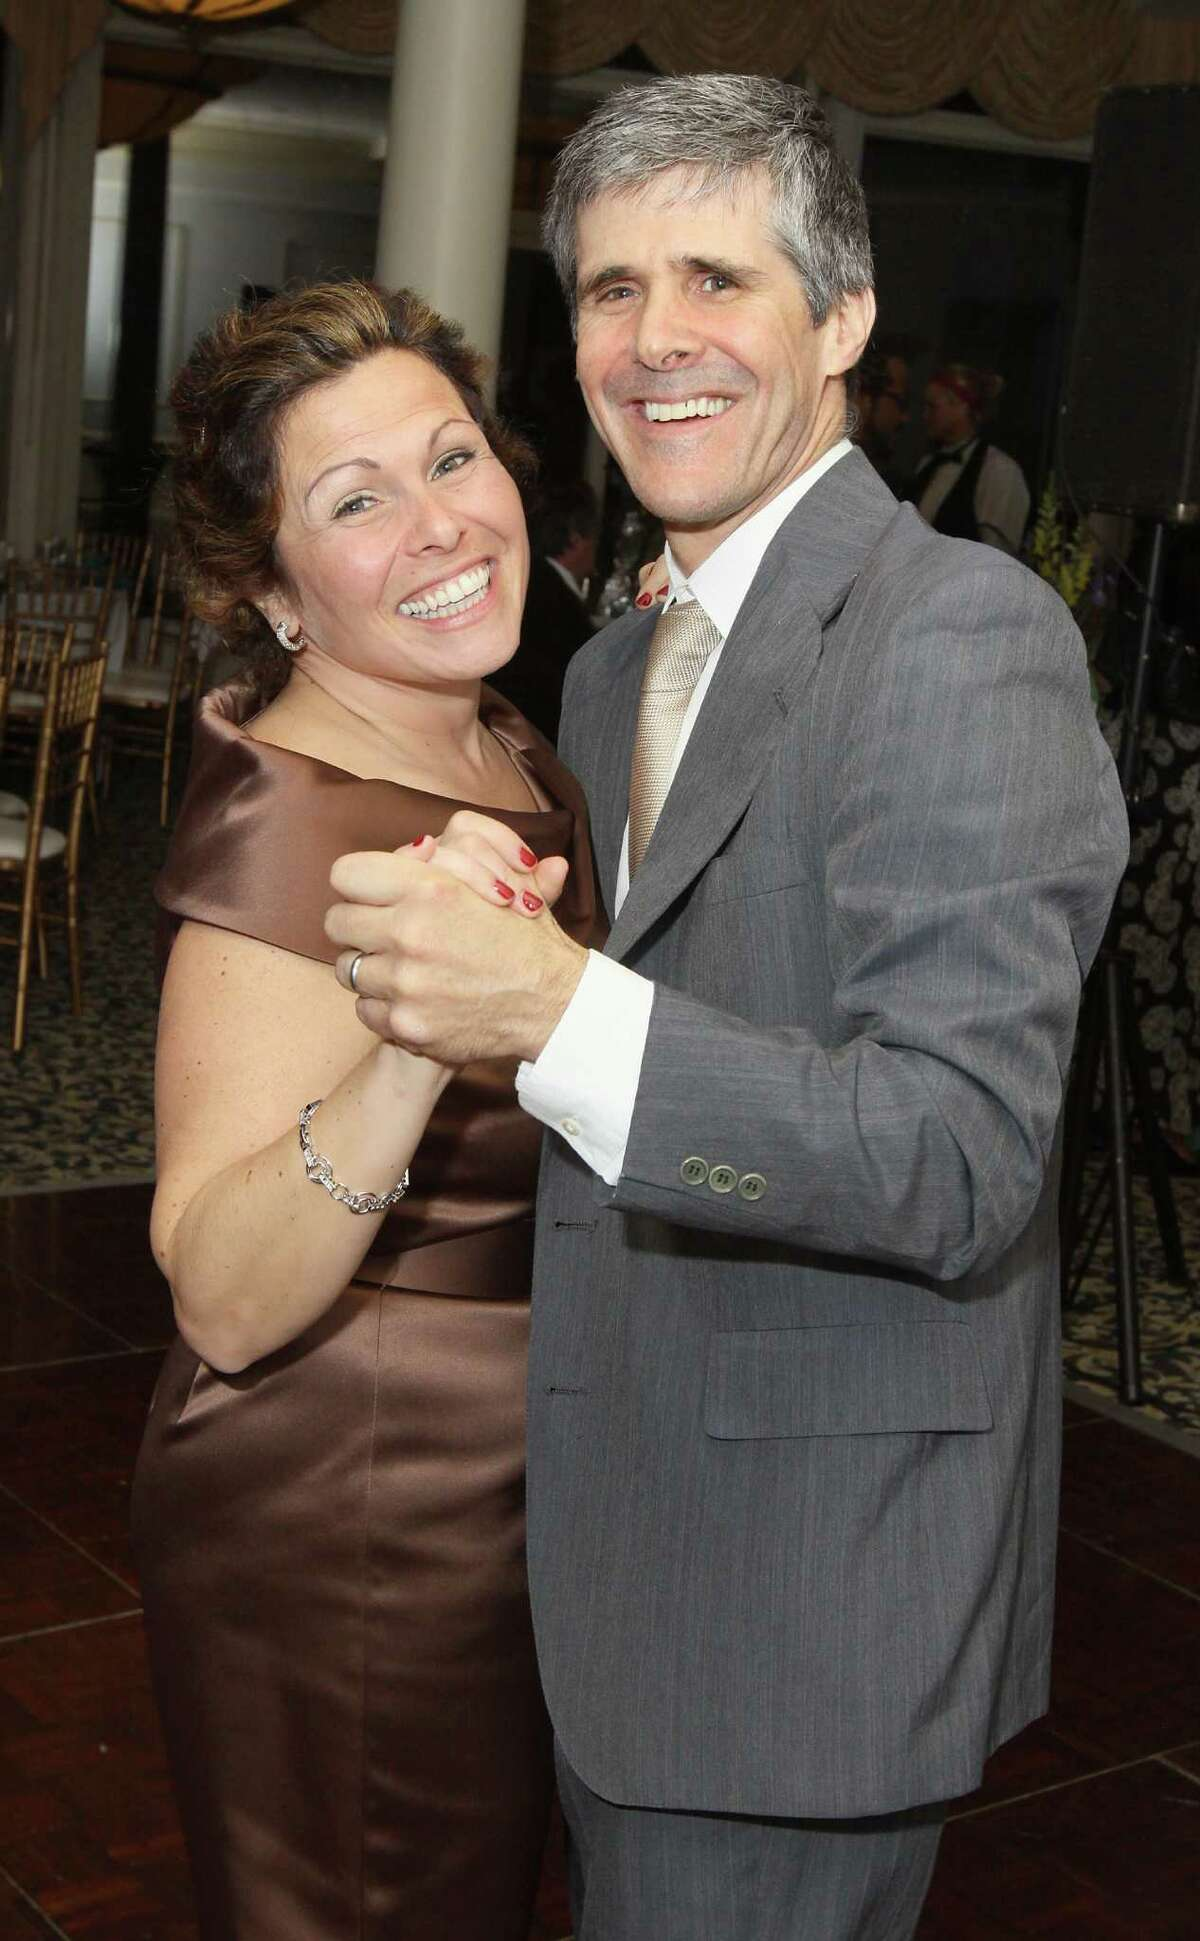 Voorheesville, NY - May 4, 2012 - (Photo by Joe Putrock/Special to the Times Union) - Ann MArie Lizzi(left) and her husband John Rizzo(right) hit the dancefloor during the